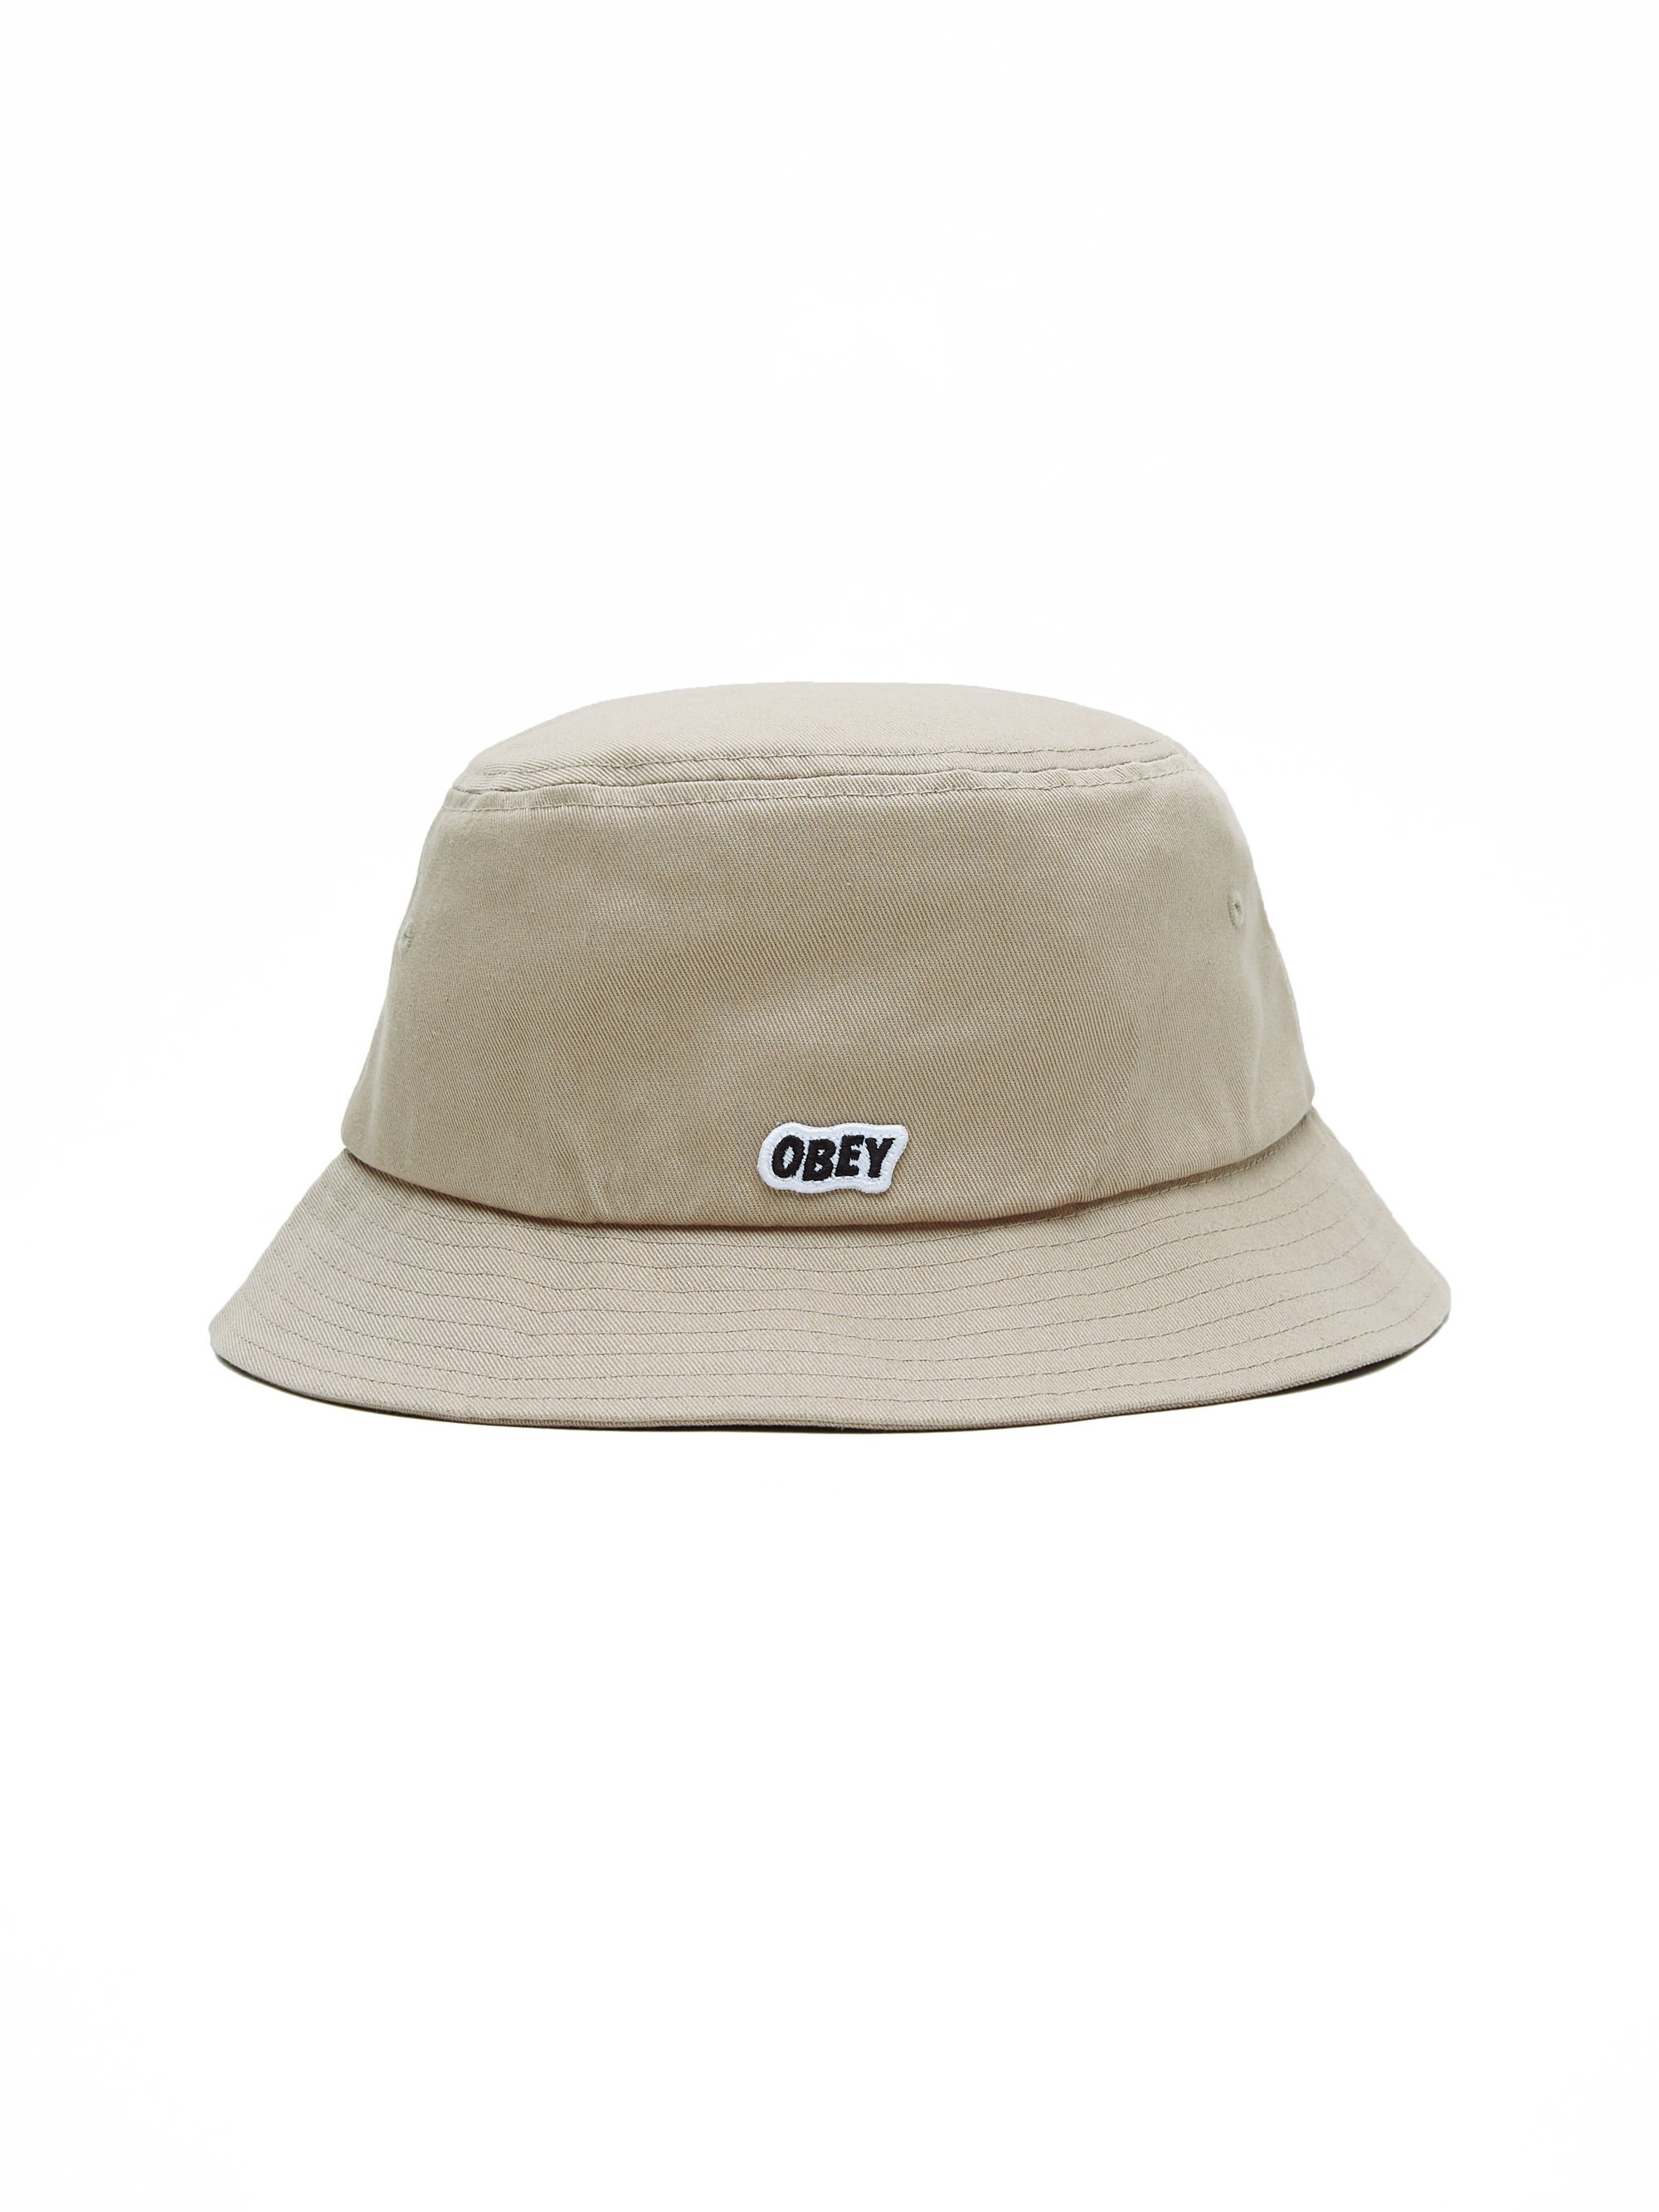 OBEY_Sleeper_Bucket_Hat_100520017_BLK_2_2000x.jpg